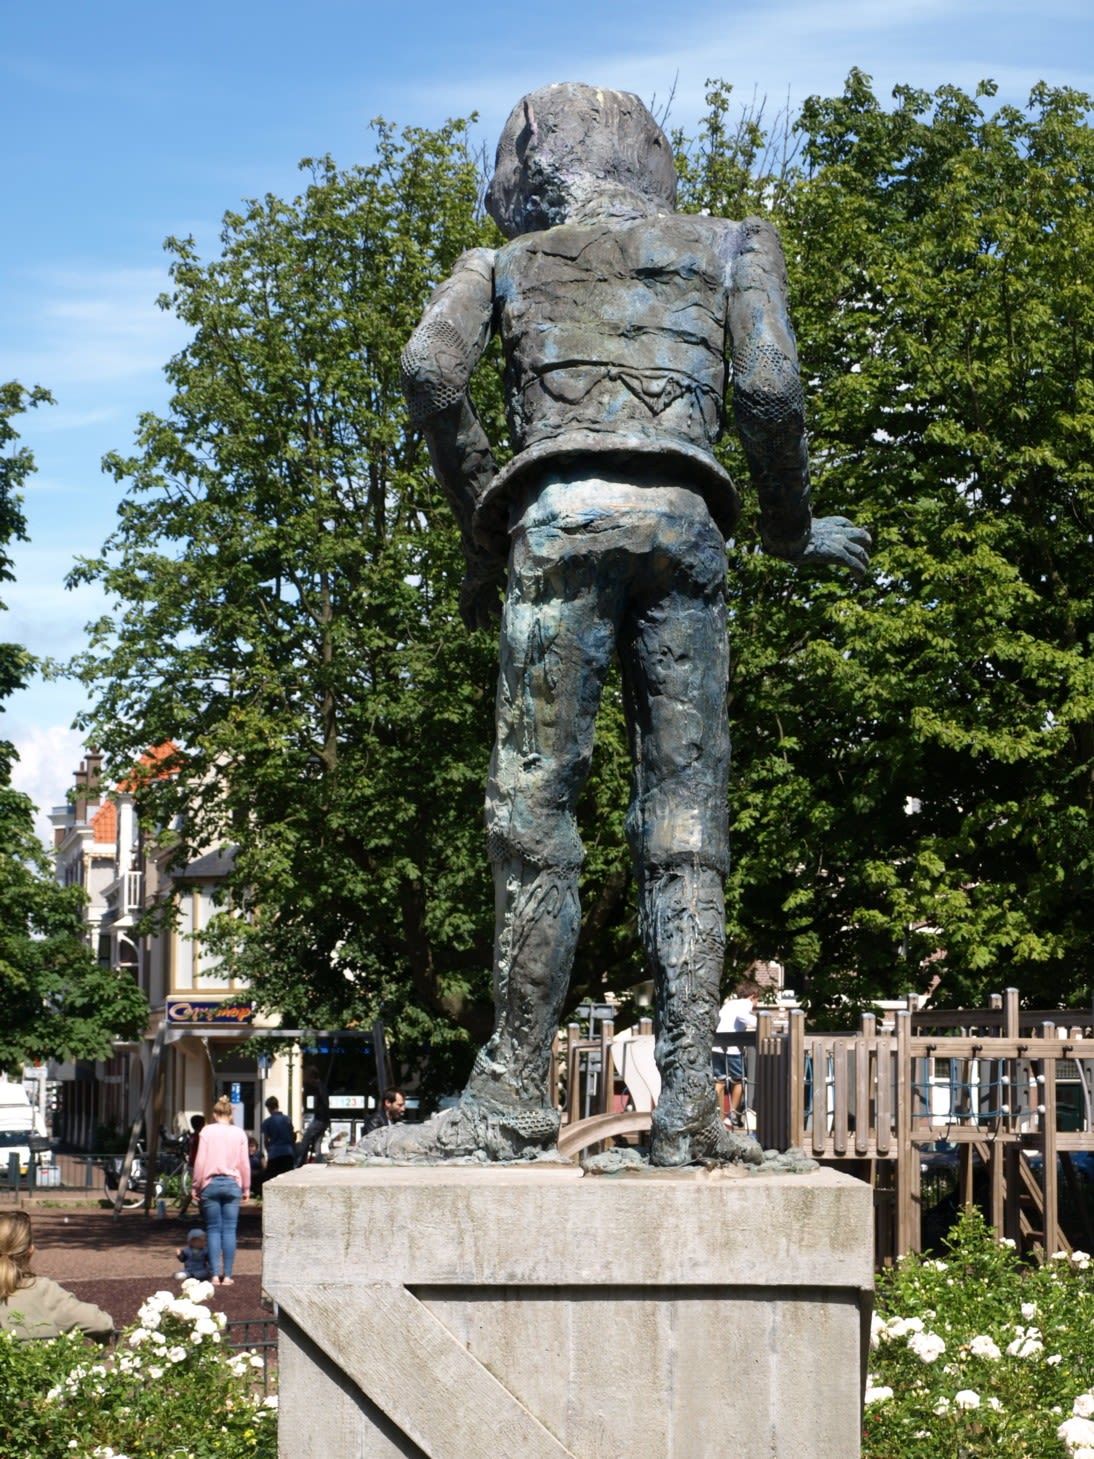 Public Sculptures by Folkert de Jong seen at Koningsplein, Amsterdam - 'The Player'